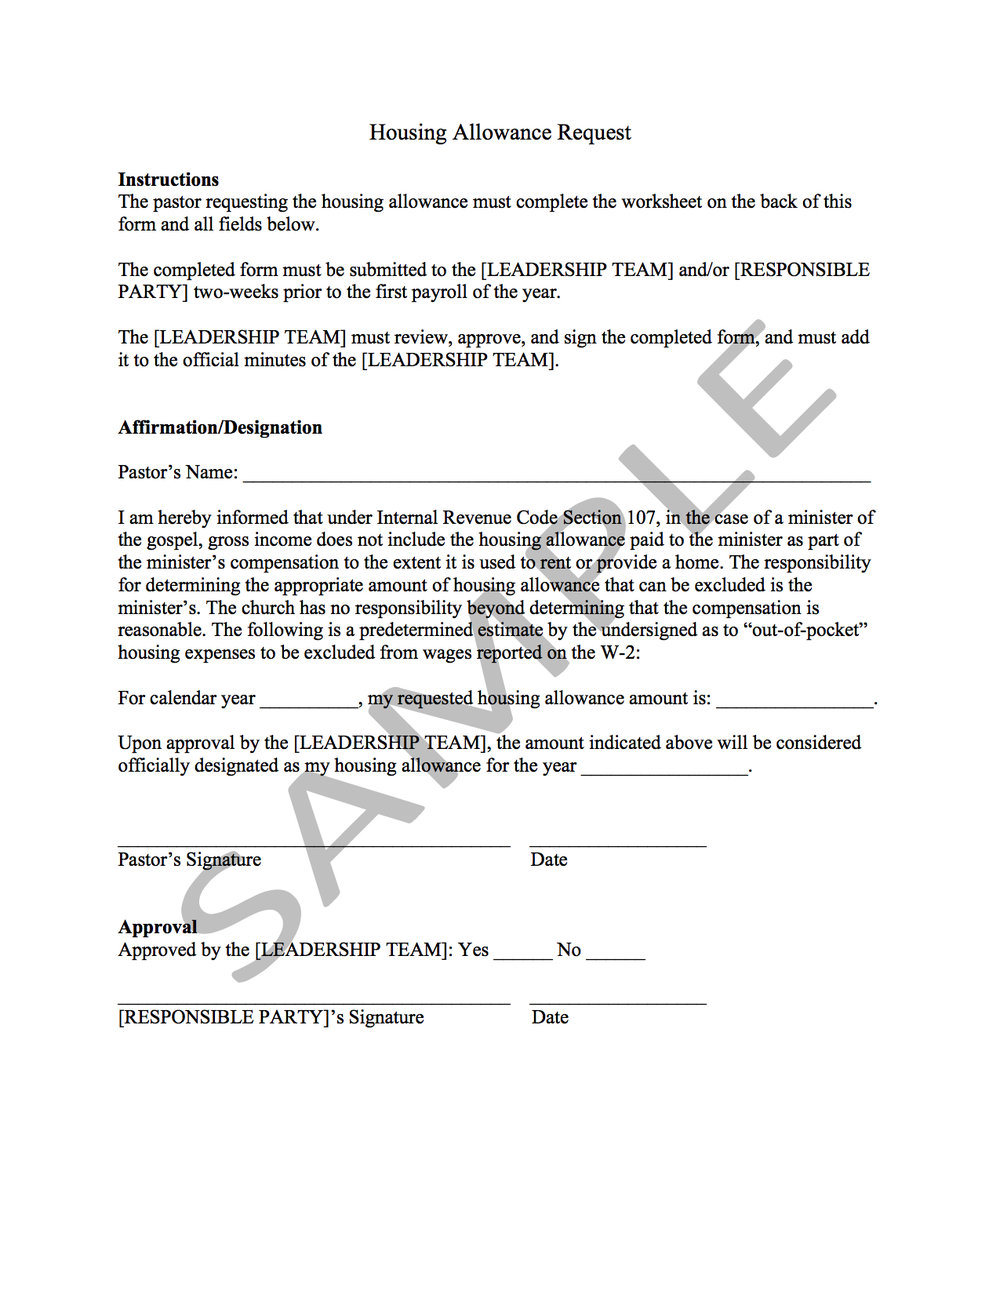 Housing Allowance Request - SAMPLE IMAGE.jpg